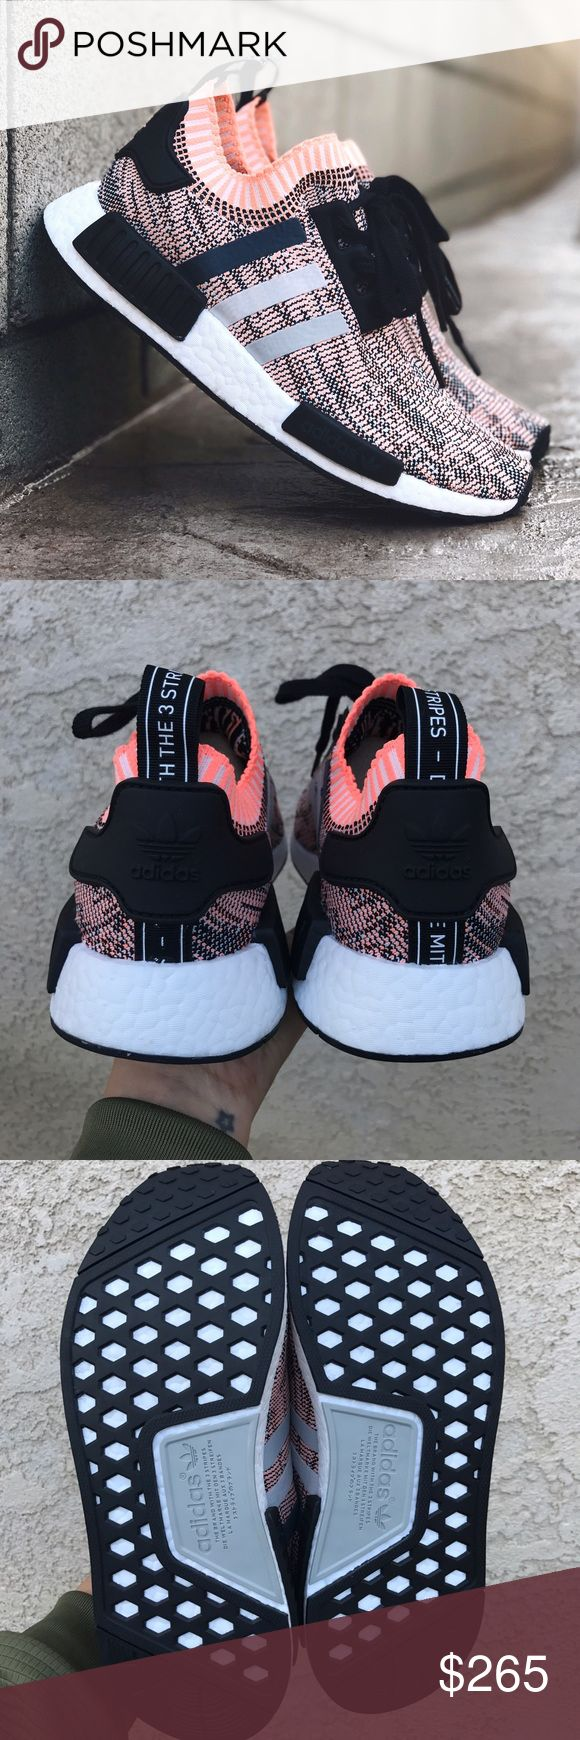 25 best ideas about nmd damen on pinterest adidas nmd r1